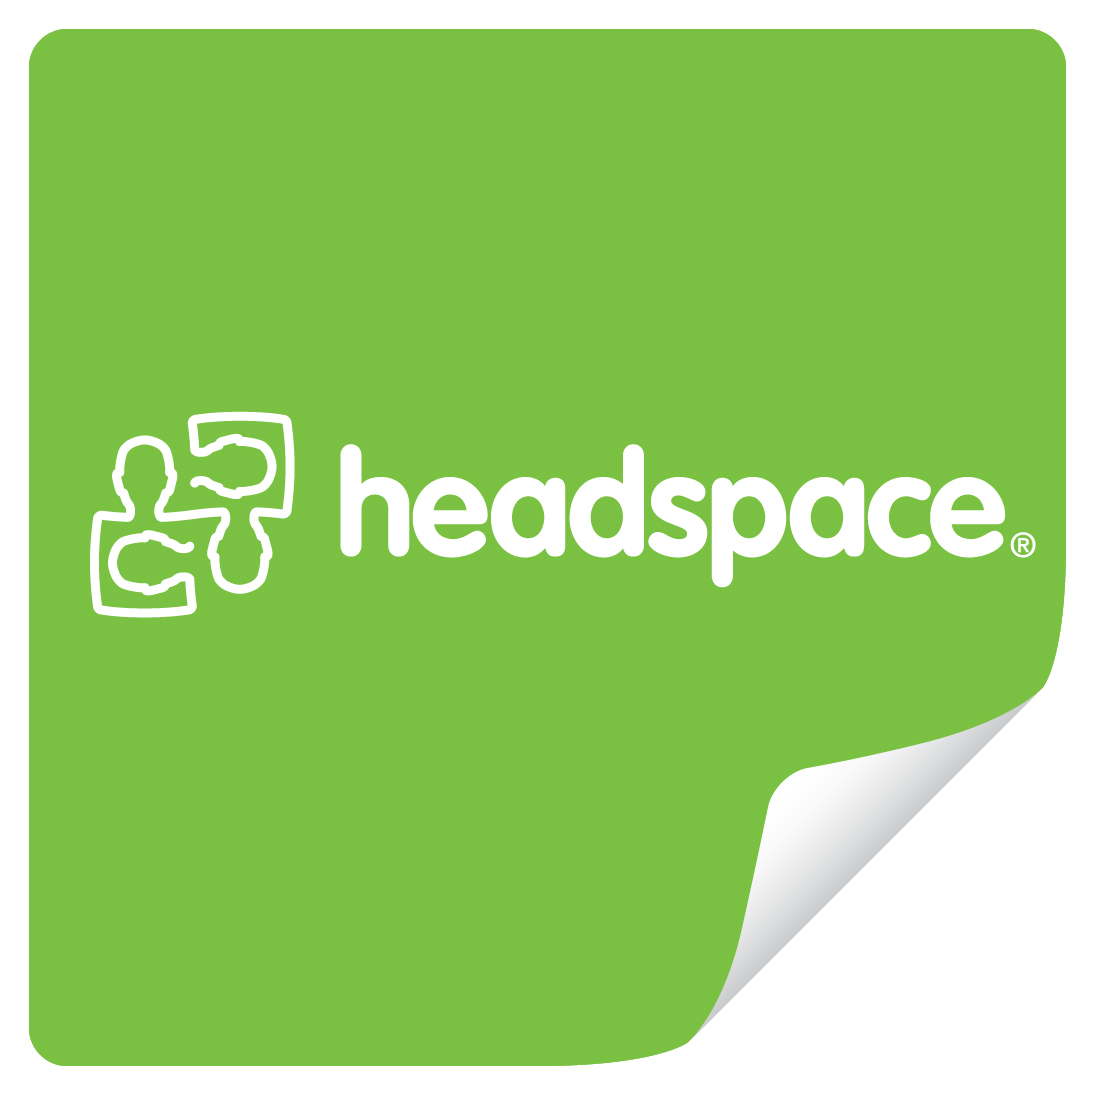 Helping Adolescents 1: the Headspace sites